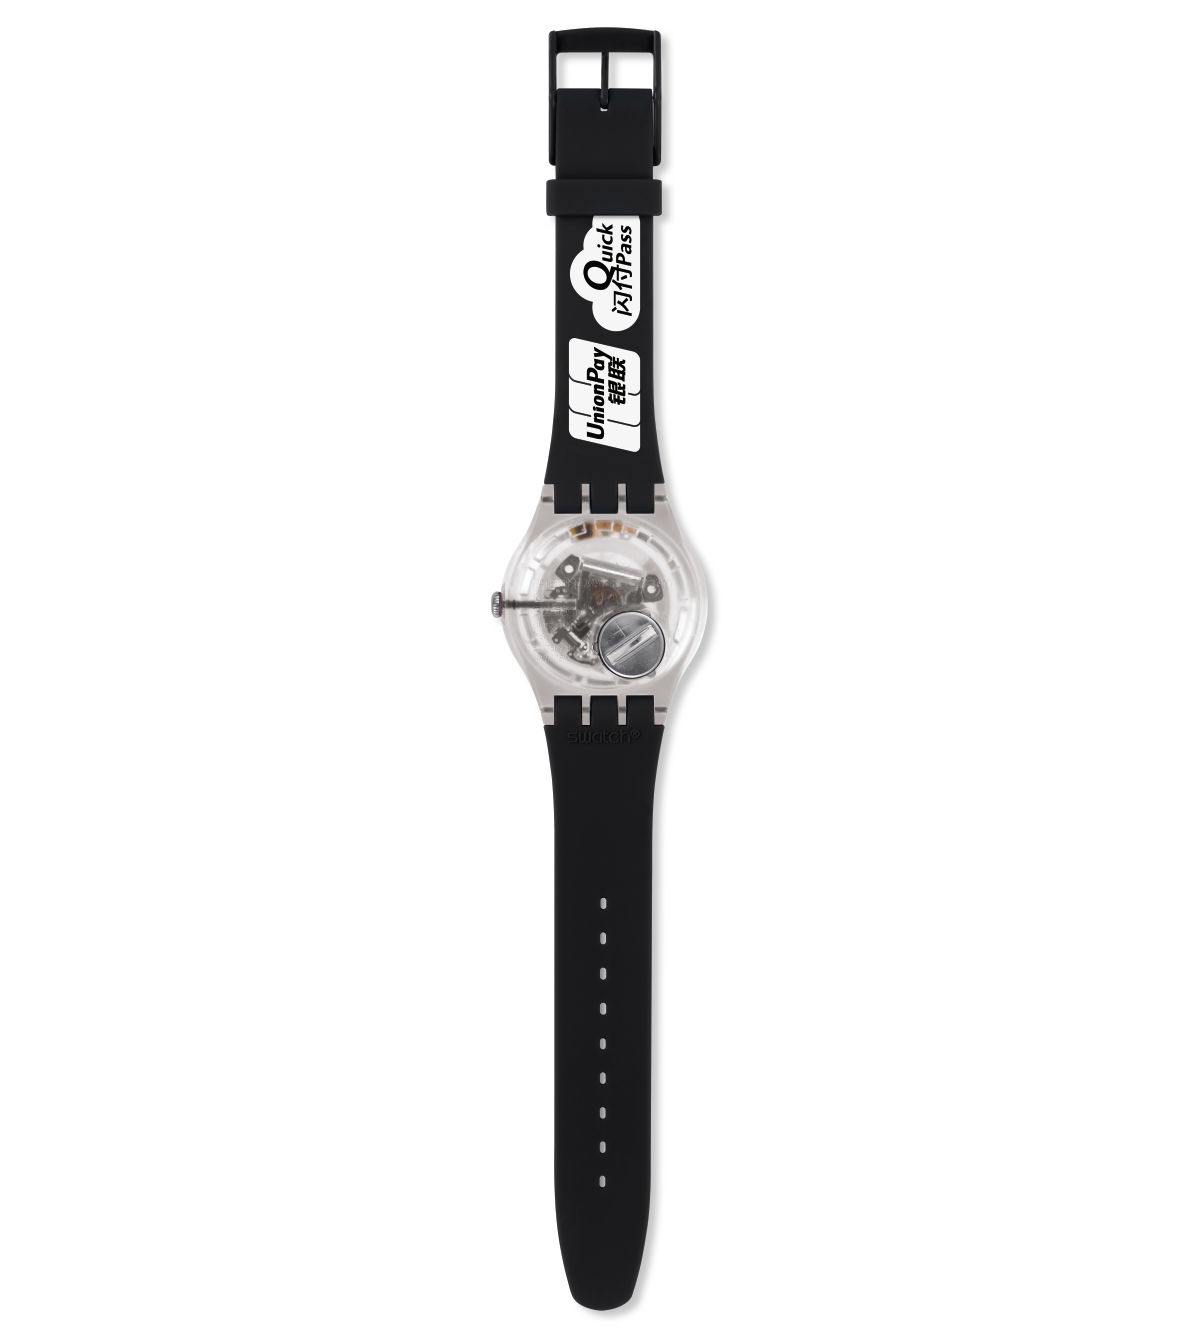 SWATCH BELLAMY DEEP - SVIW105-1200